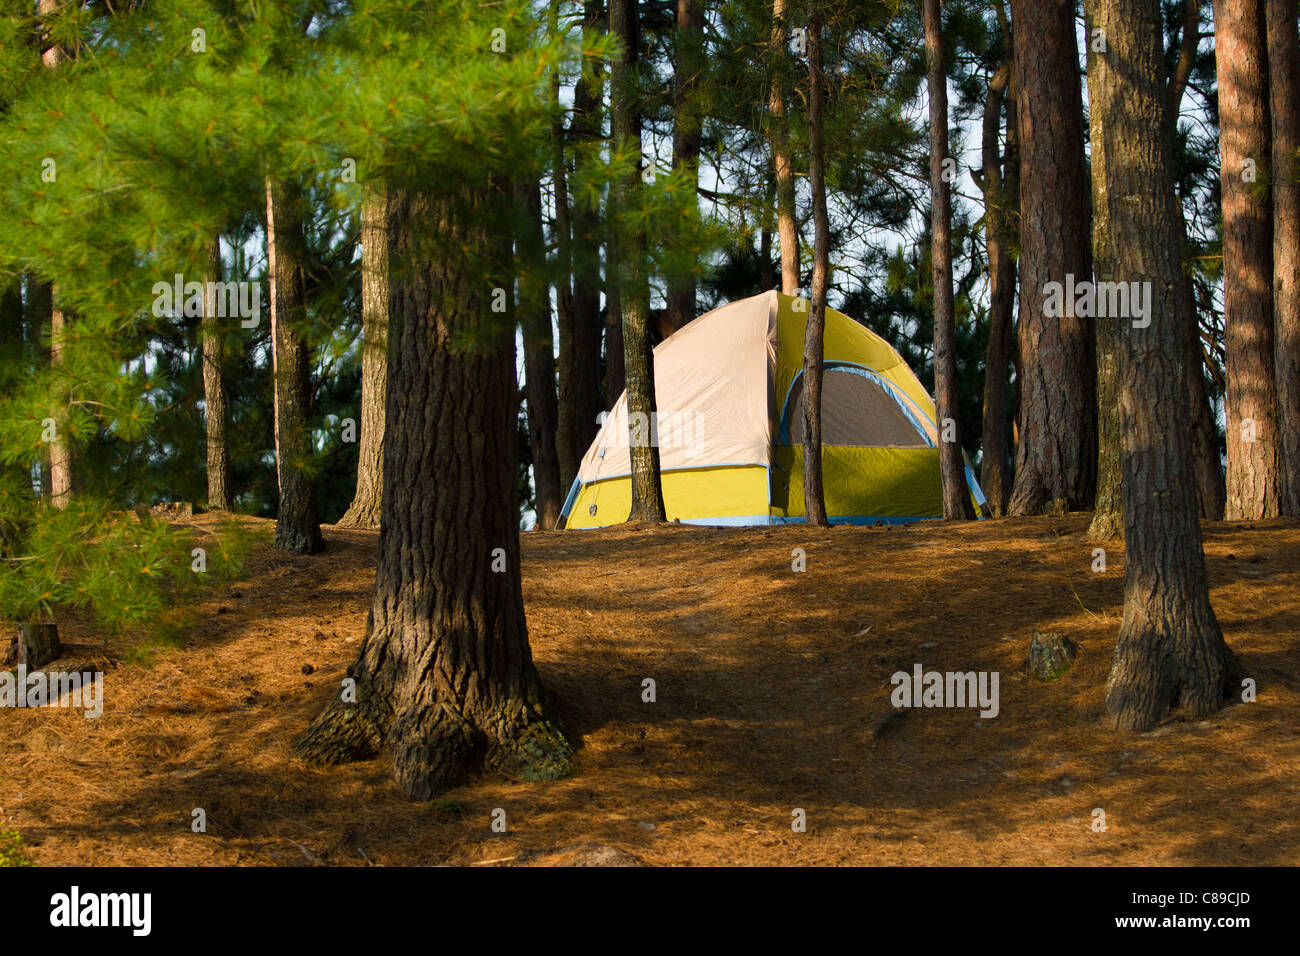 camping in the woods. Plain Woods Tent Camping In The Woods At A Remote Wilderness Campsite With In The